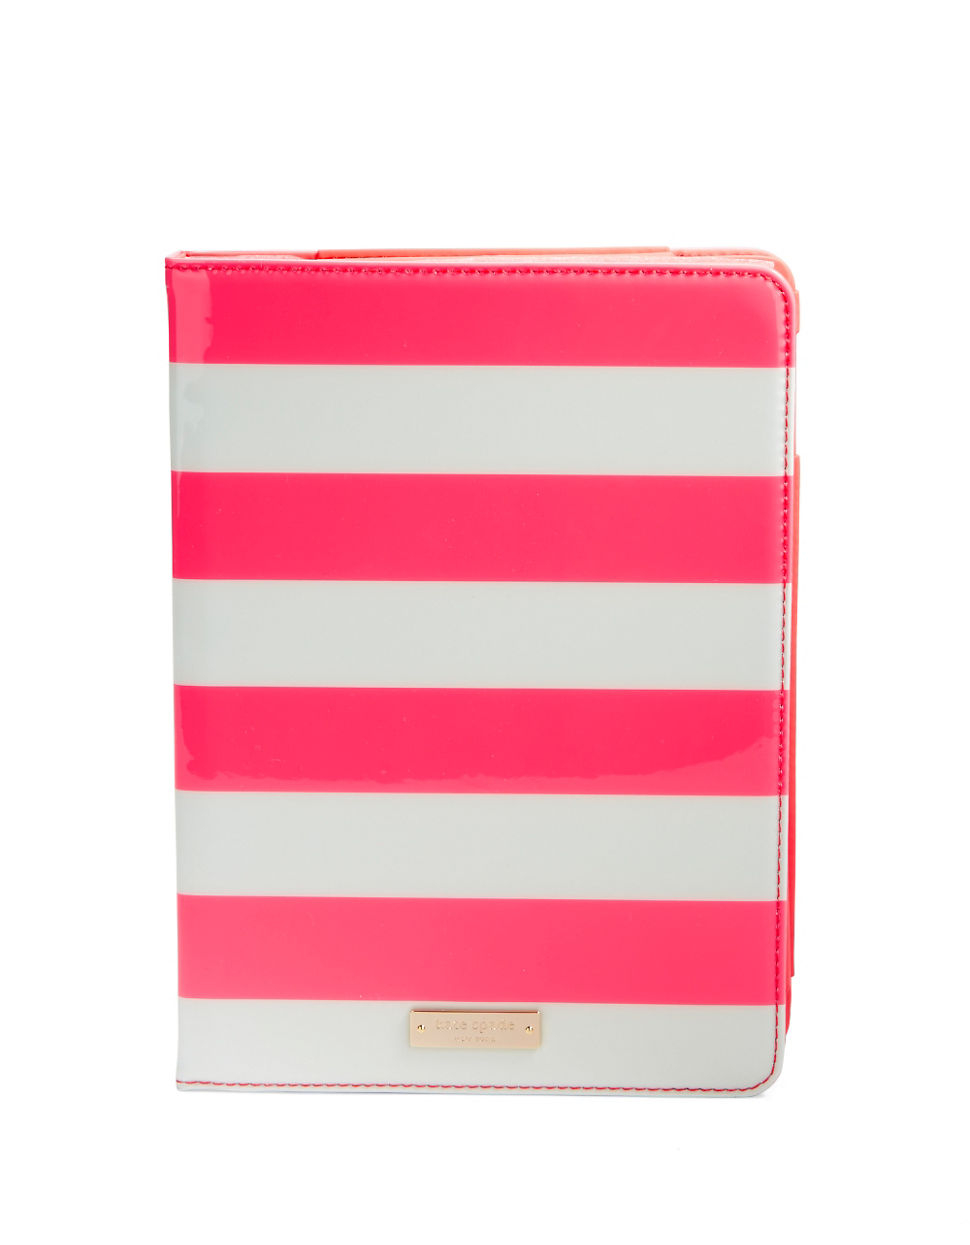 Lyst - Kate Spade New York Striped Ipad Air Case in Pink